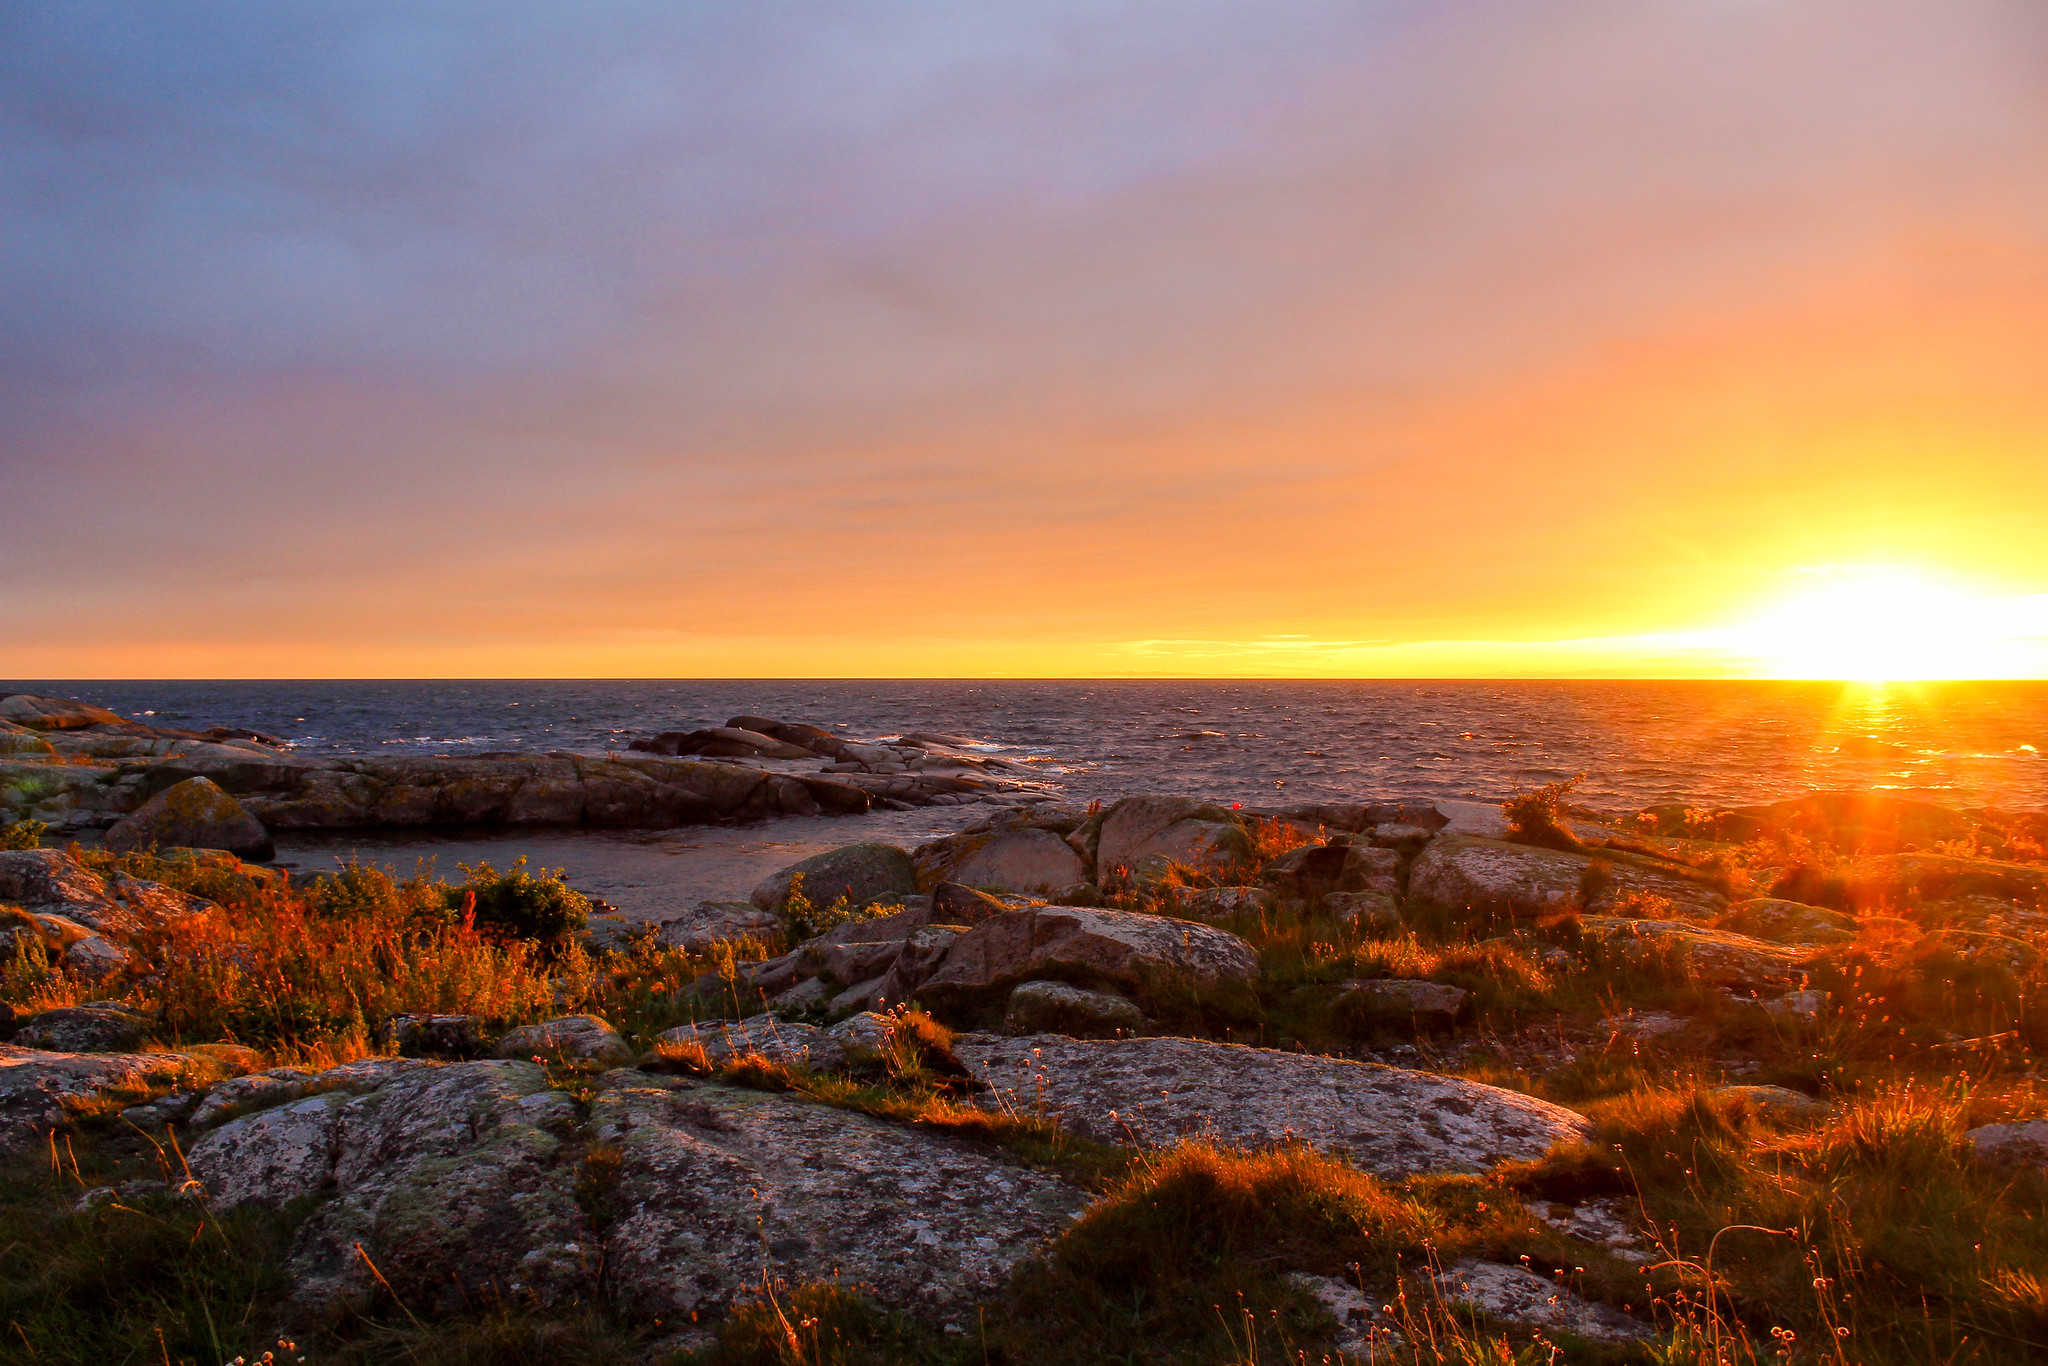 sweden is one of the best healing places around the world